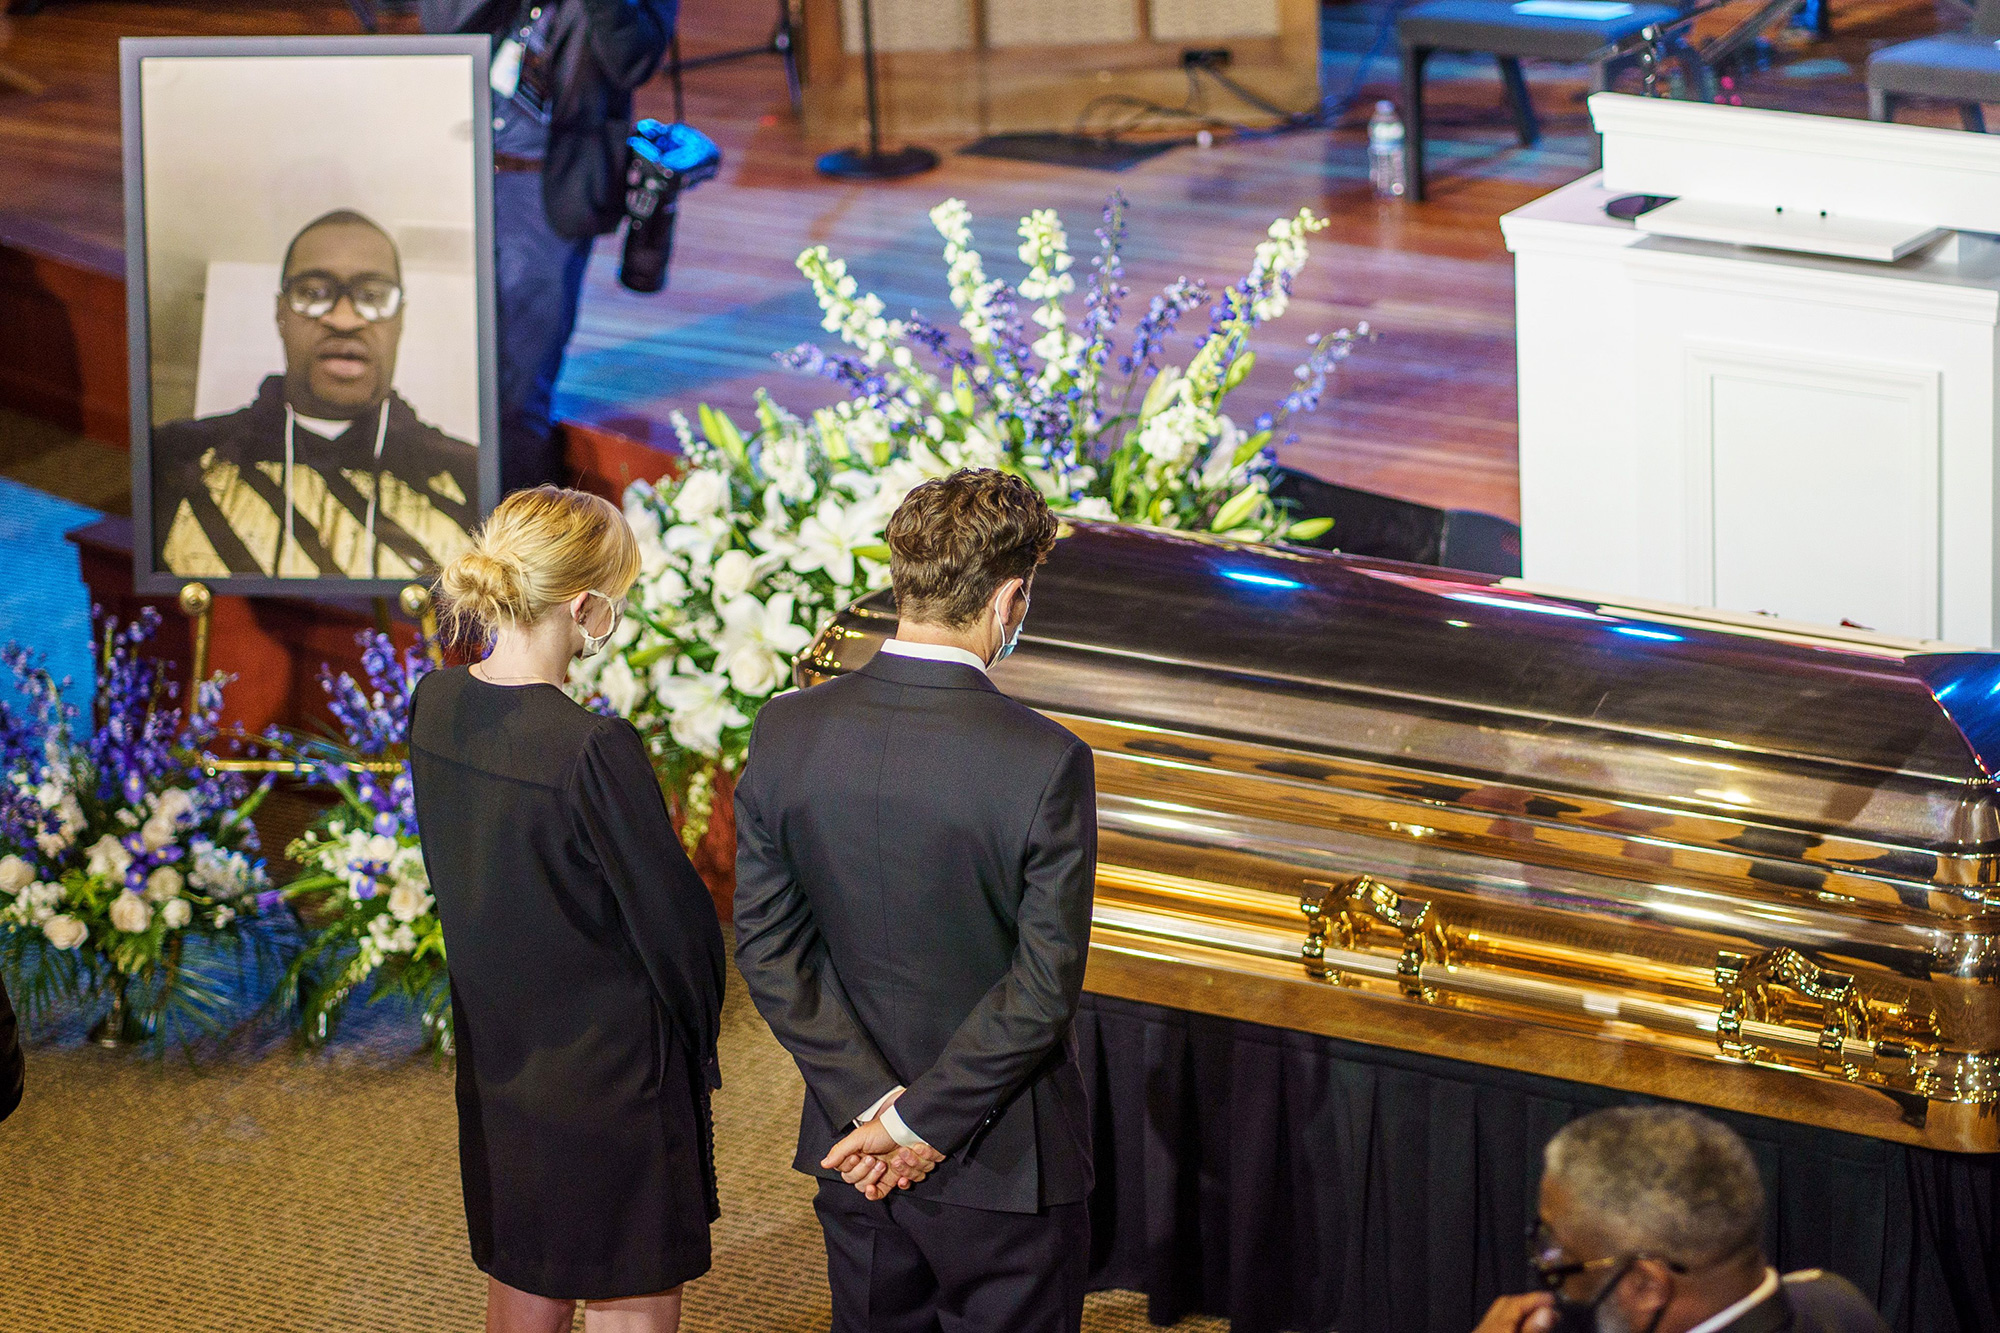 Minneapolis Mayor Jacob Frey(C) shows his respect to the remains of George Floyd awaiting a memorial service in his honor on June 4, 2020